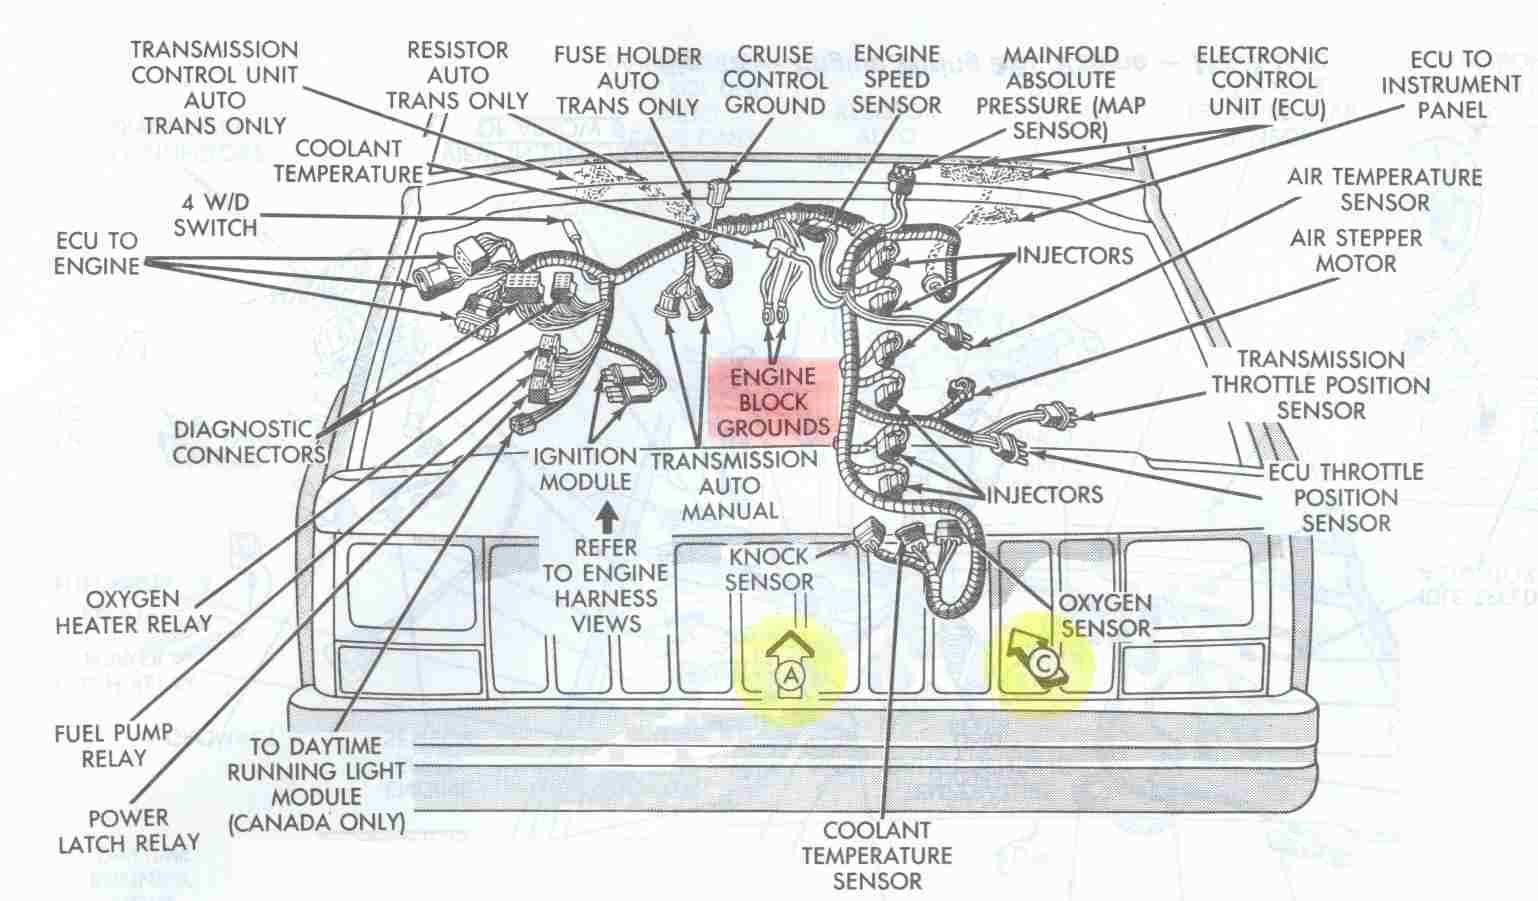 LE_2464] Diagram For Wiring On Jeep Grand Cherokee Bcm Schematic WiringBios Neph Stre Kumb Oper Sple None Salv Nful Rect Mohammedshrine Librar  Wiring 101